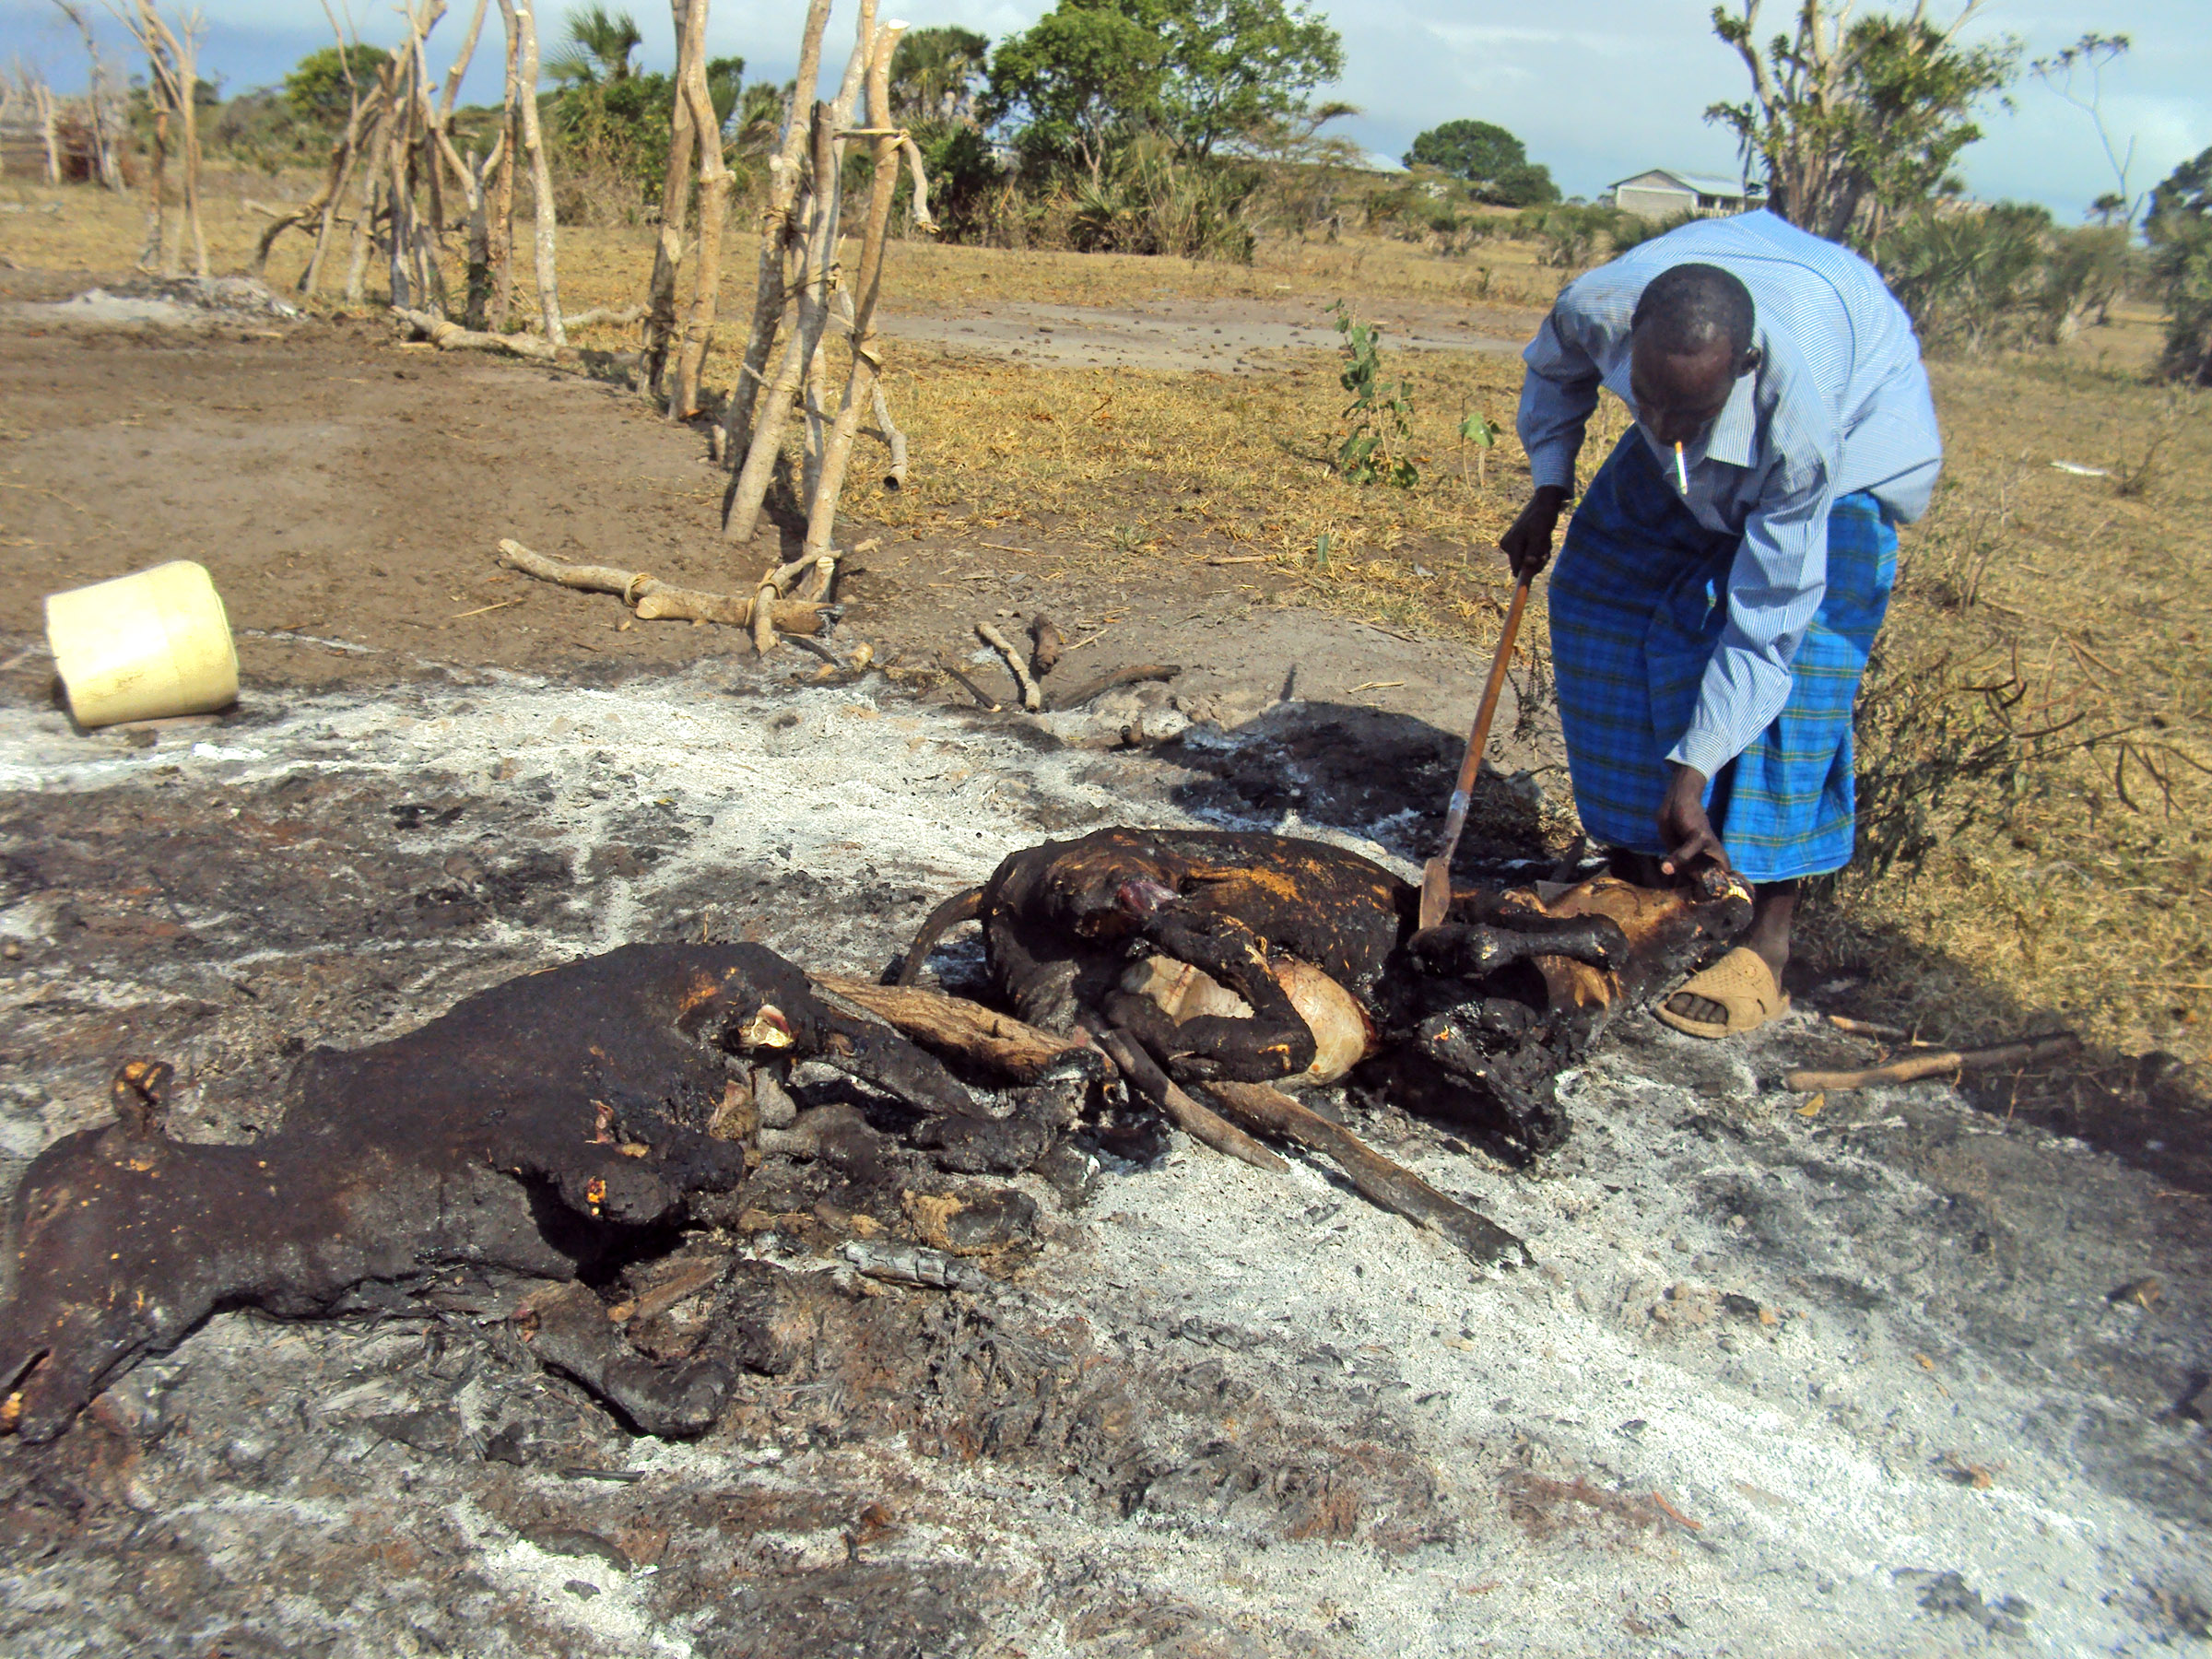 About a month of ethno-political violence in Coast Province's Tana River County has led to the deaths of over 100 people, the displacement of thousands others and the destruction of livelihoods